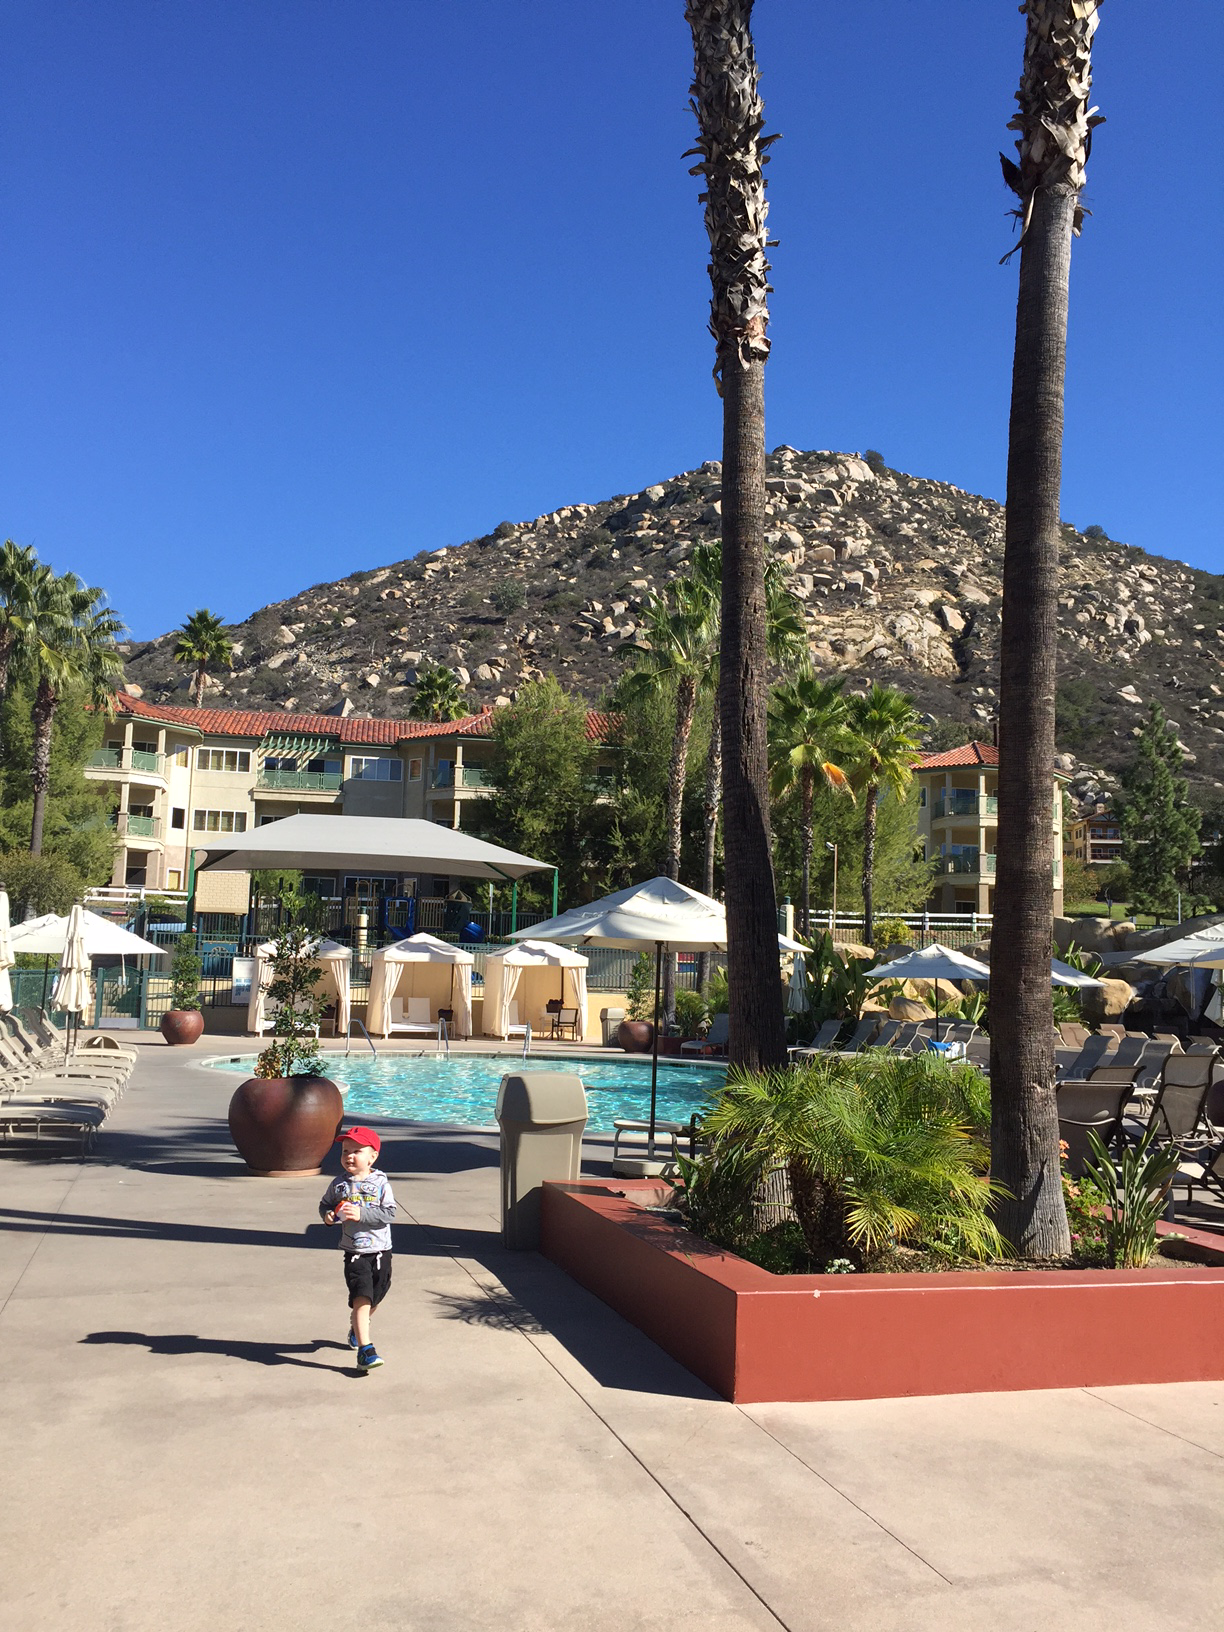 Welk Resort San Diego For Families A Hit!